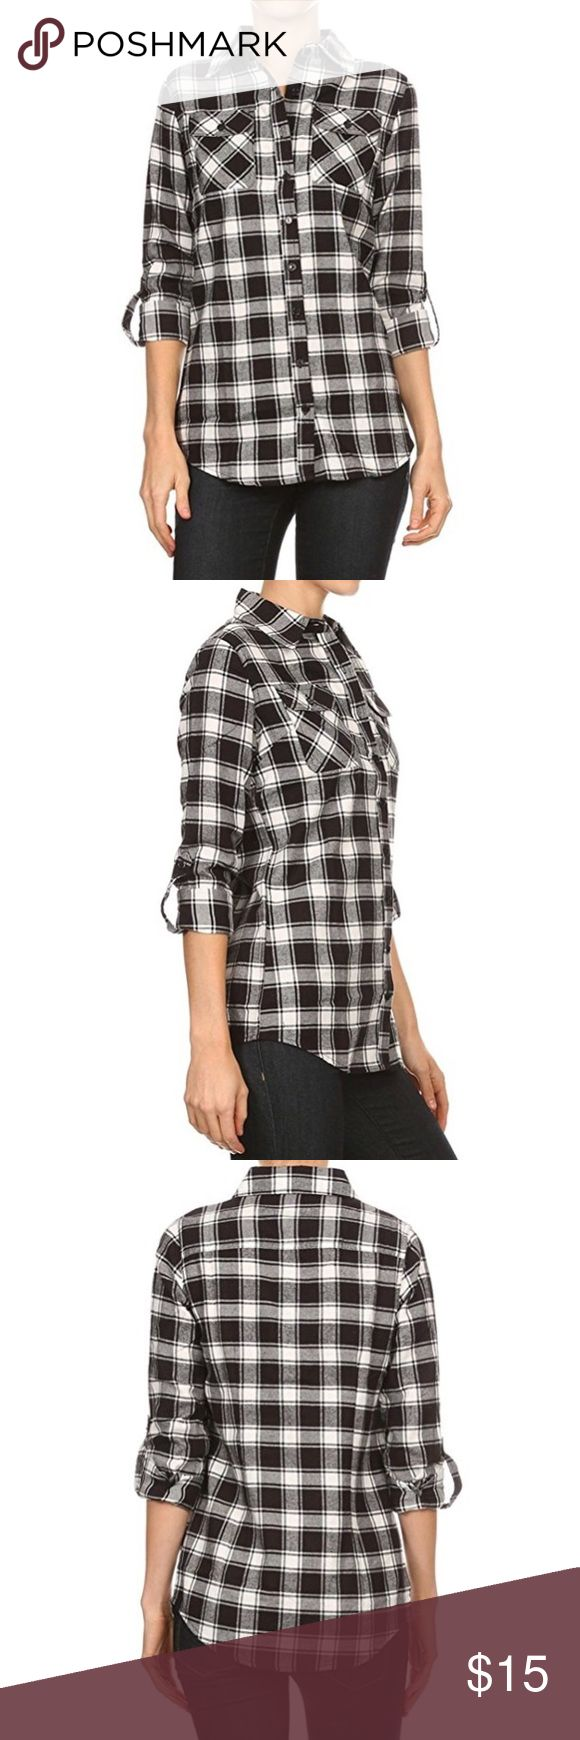 Long Sleeve Flannel Plaid Button Down Shirt Plaid button down shirt with roll up sleeves, collar, buttoned chest pockets, and rounded hem. 100% Cotton Imported Comfortable lightweight flannel plaid shirt Tabs to hold rolled up sleeve and hem. Please refer to our size chart provided in the last product images for further details. Tops Button Down Shirts